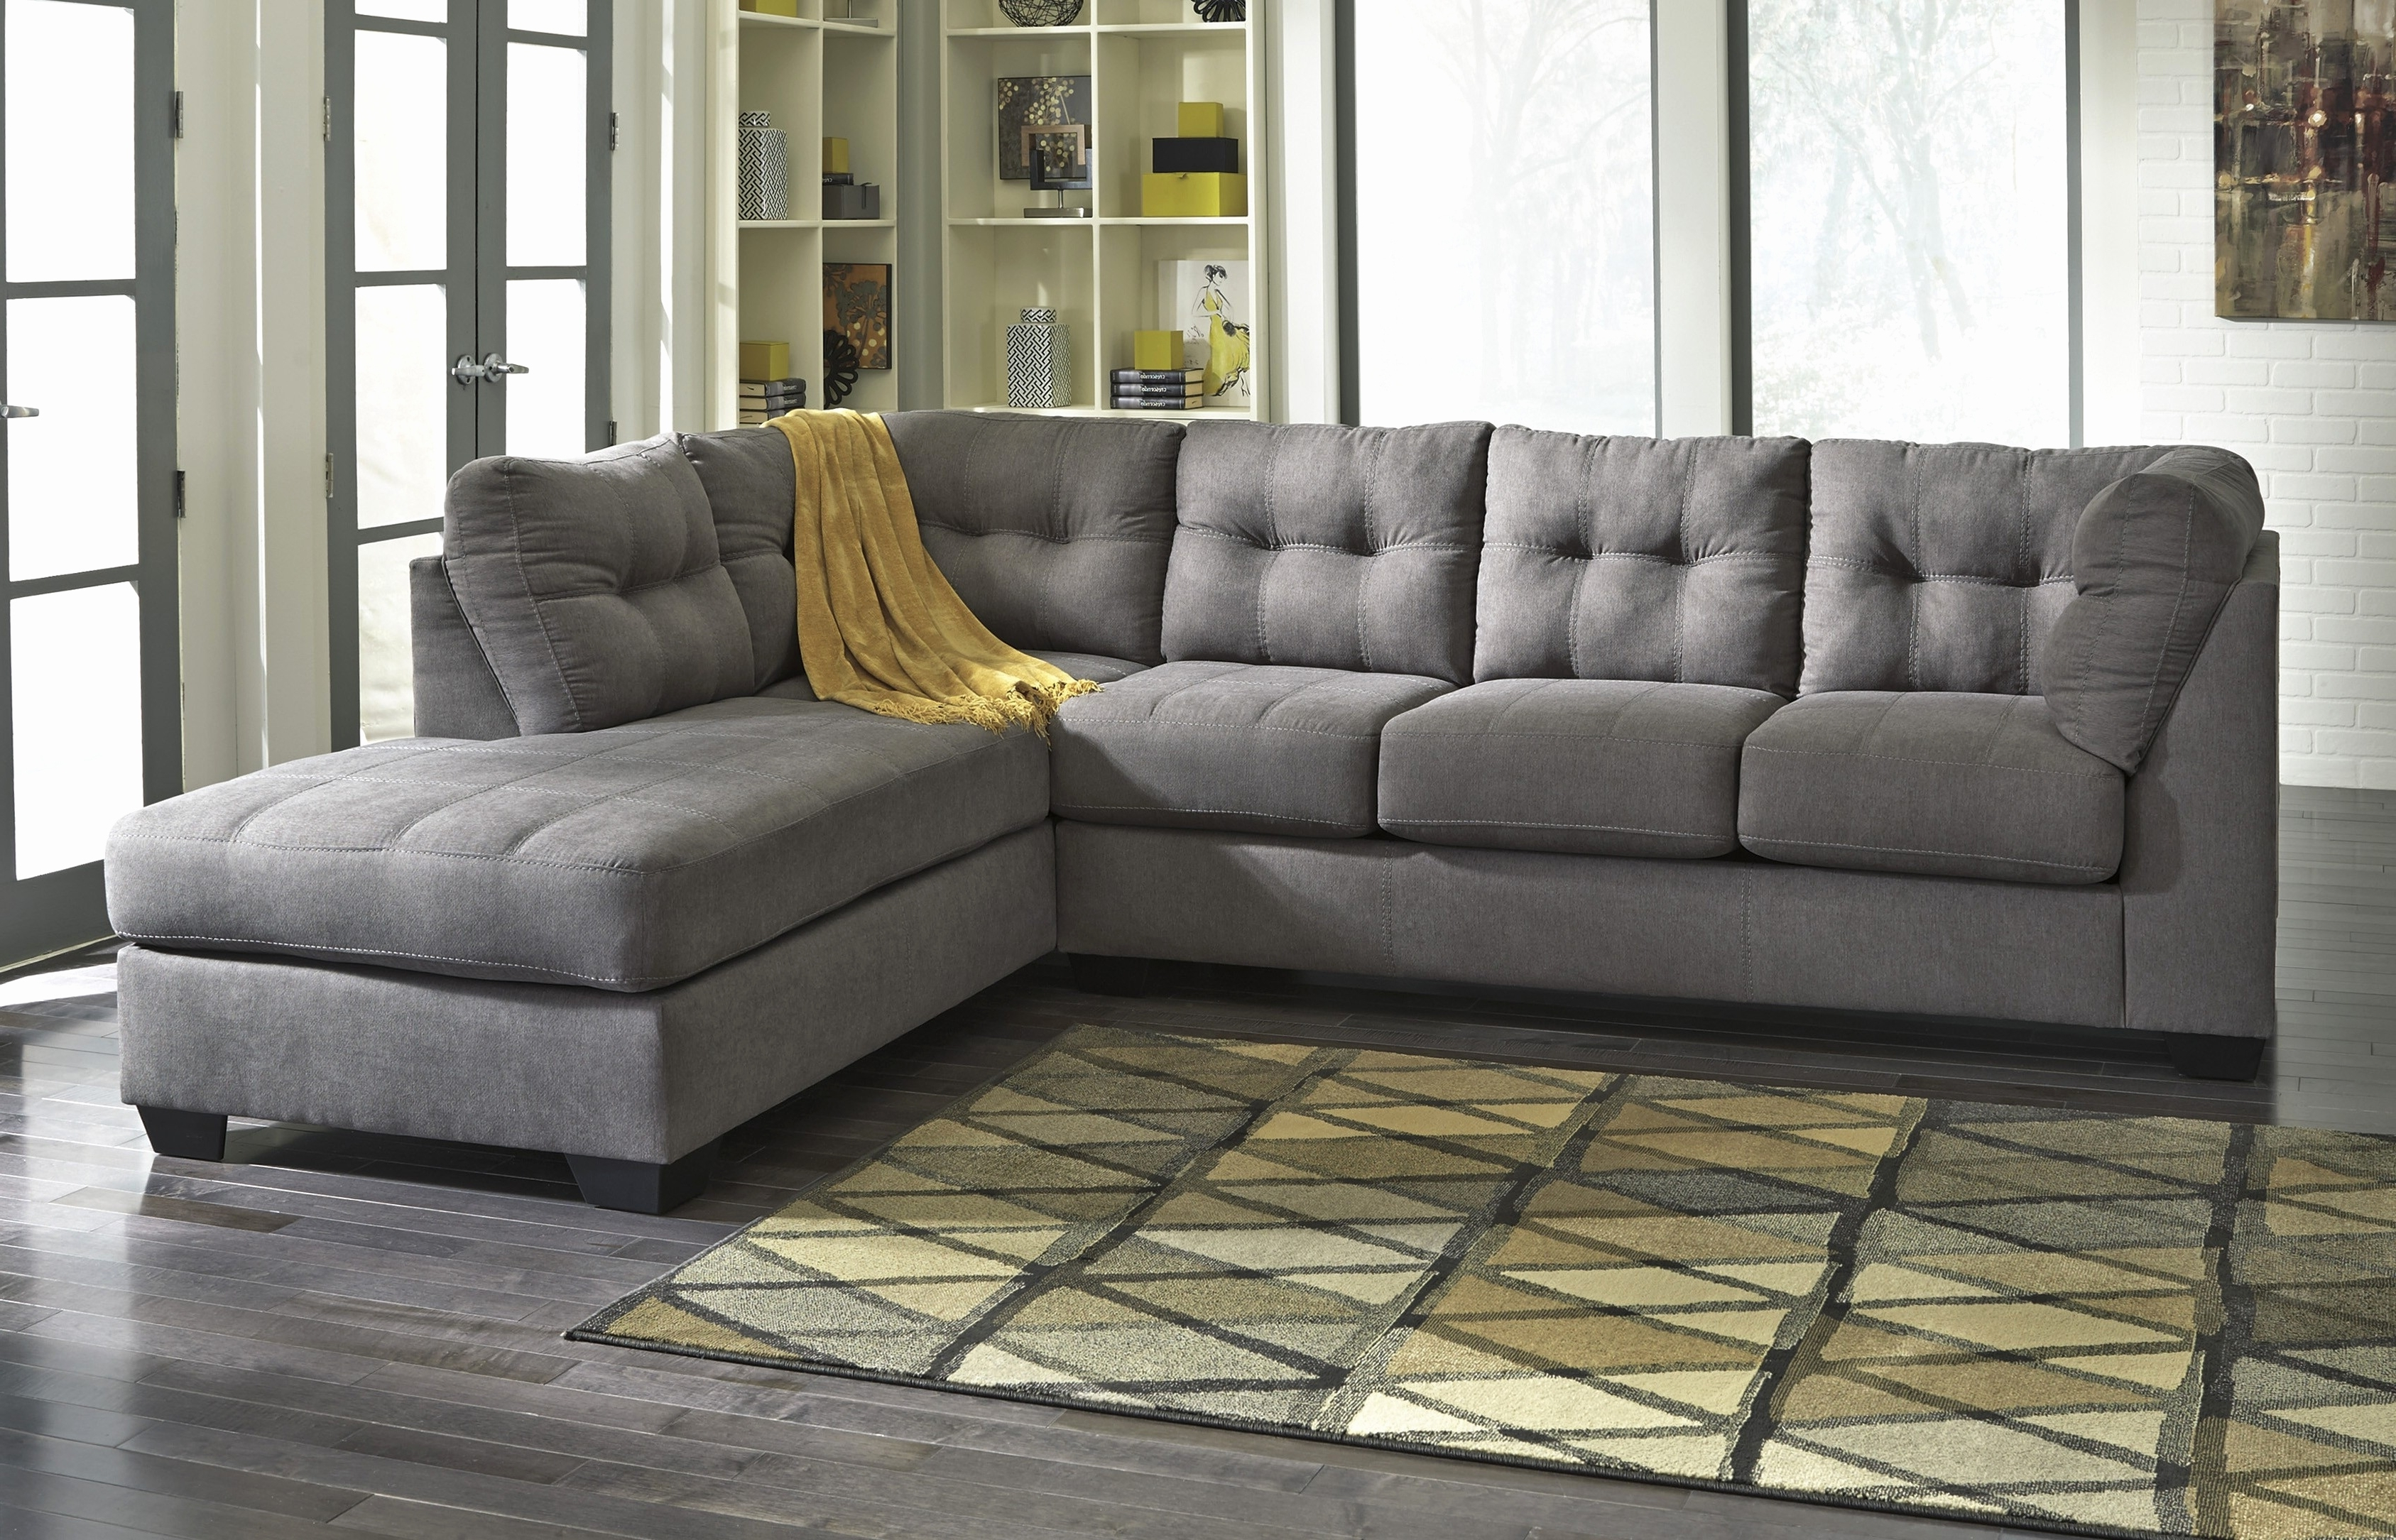 Unique Sectional Sleeper Sofa Ashley 2018 – Couches And Sofas Ideas Within Popular Sectional Sofas At Ashley (View 16 of 20)